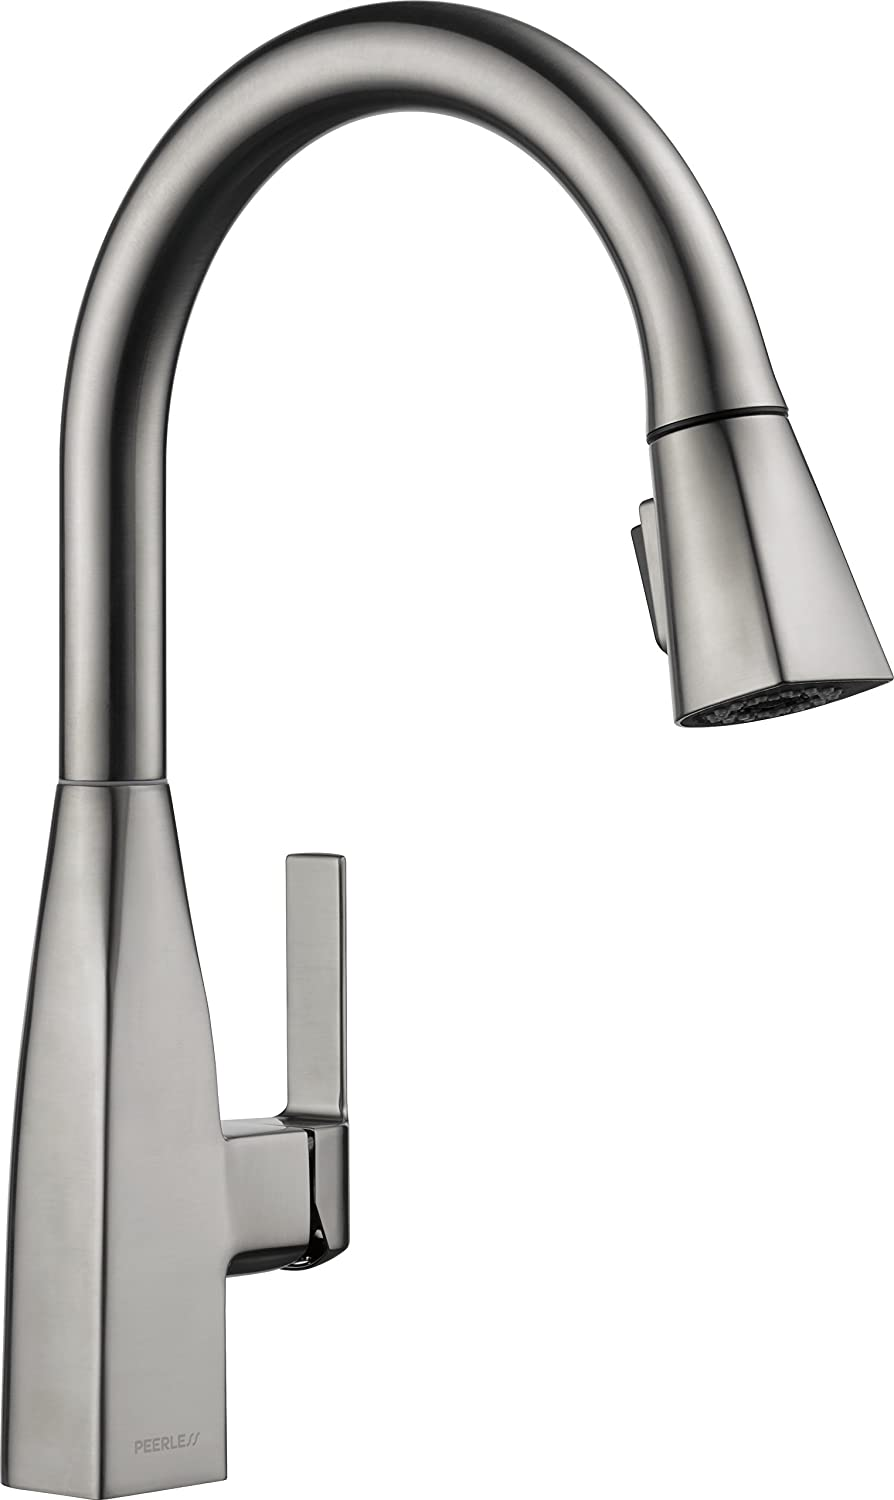 peerless pull down kitchen faucet reviews